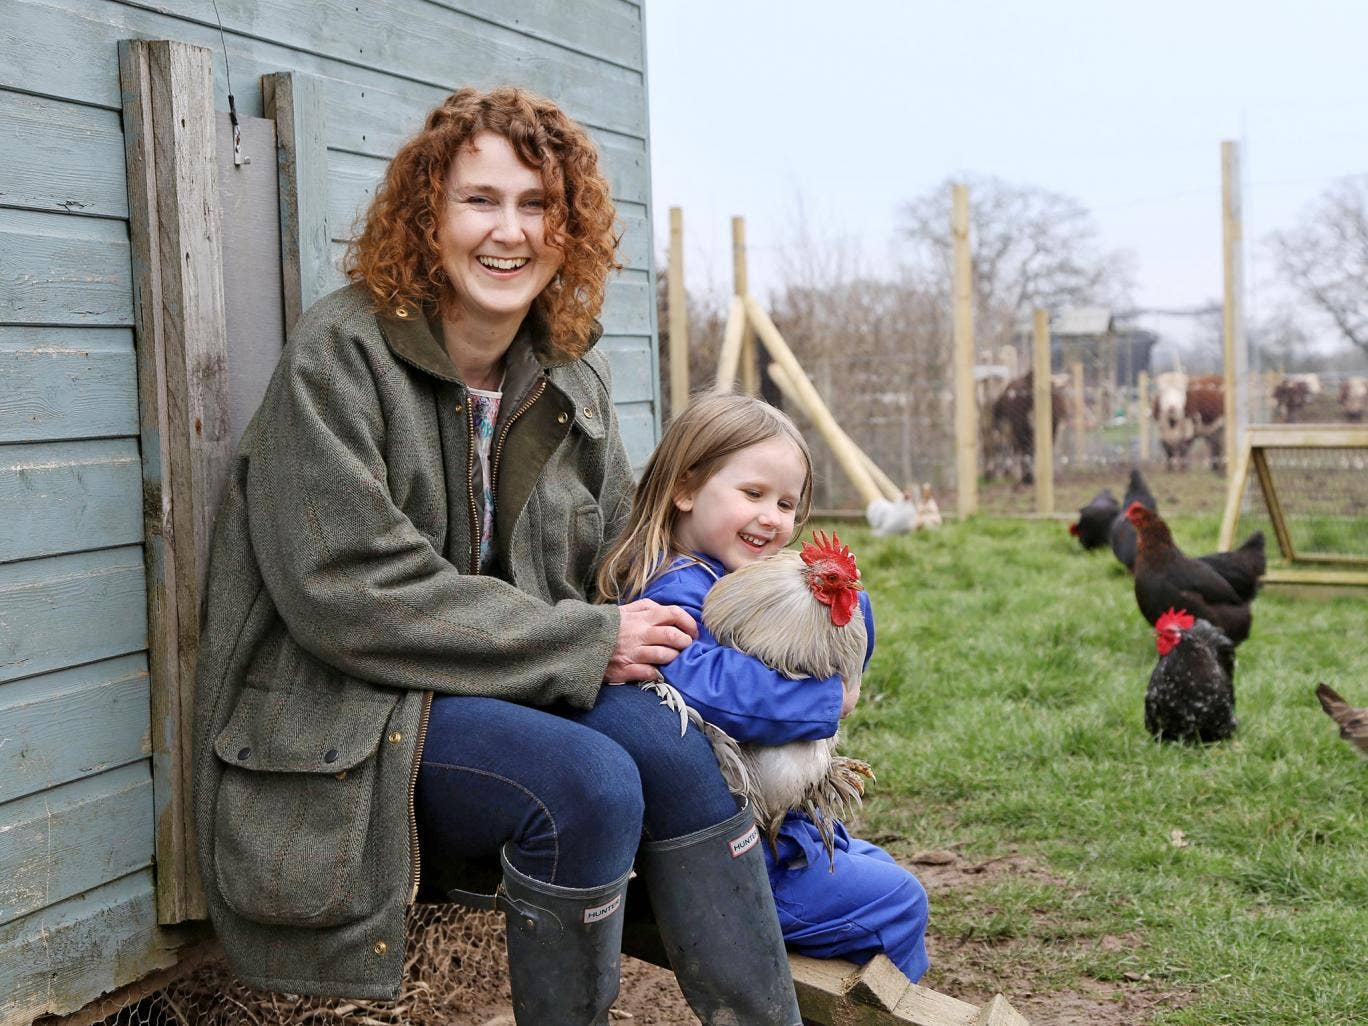 After the storm: Kirsty Grocott at home in Shropshire with her youngest child, Minnie, now aged four